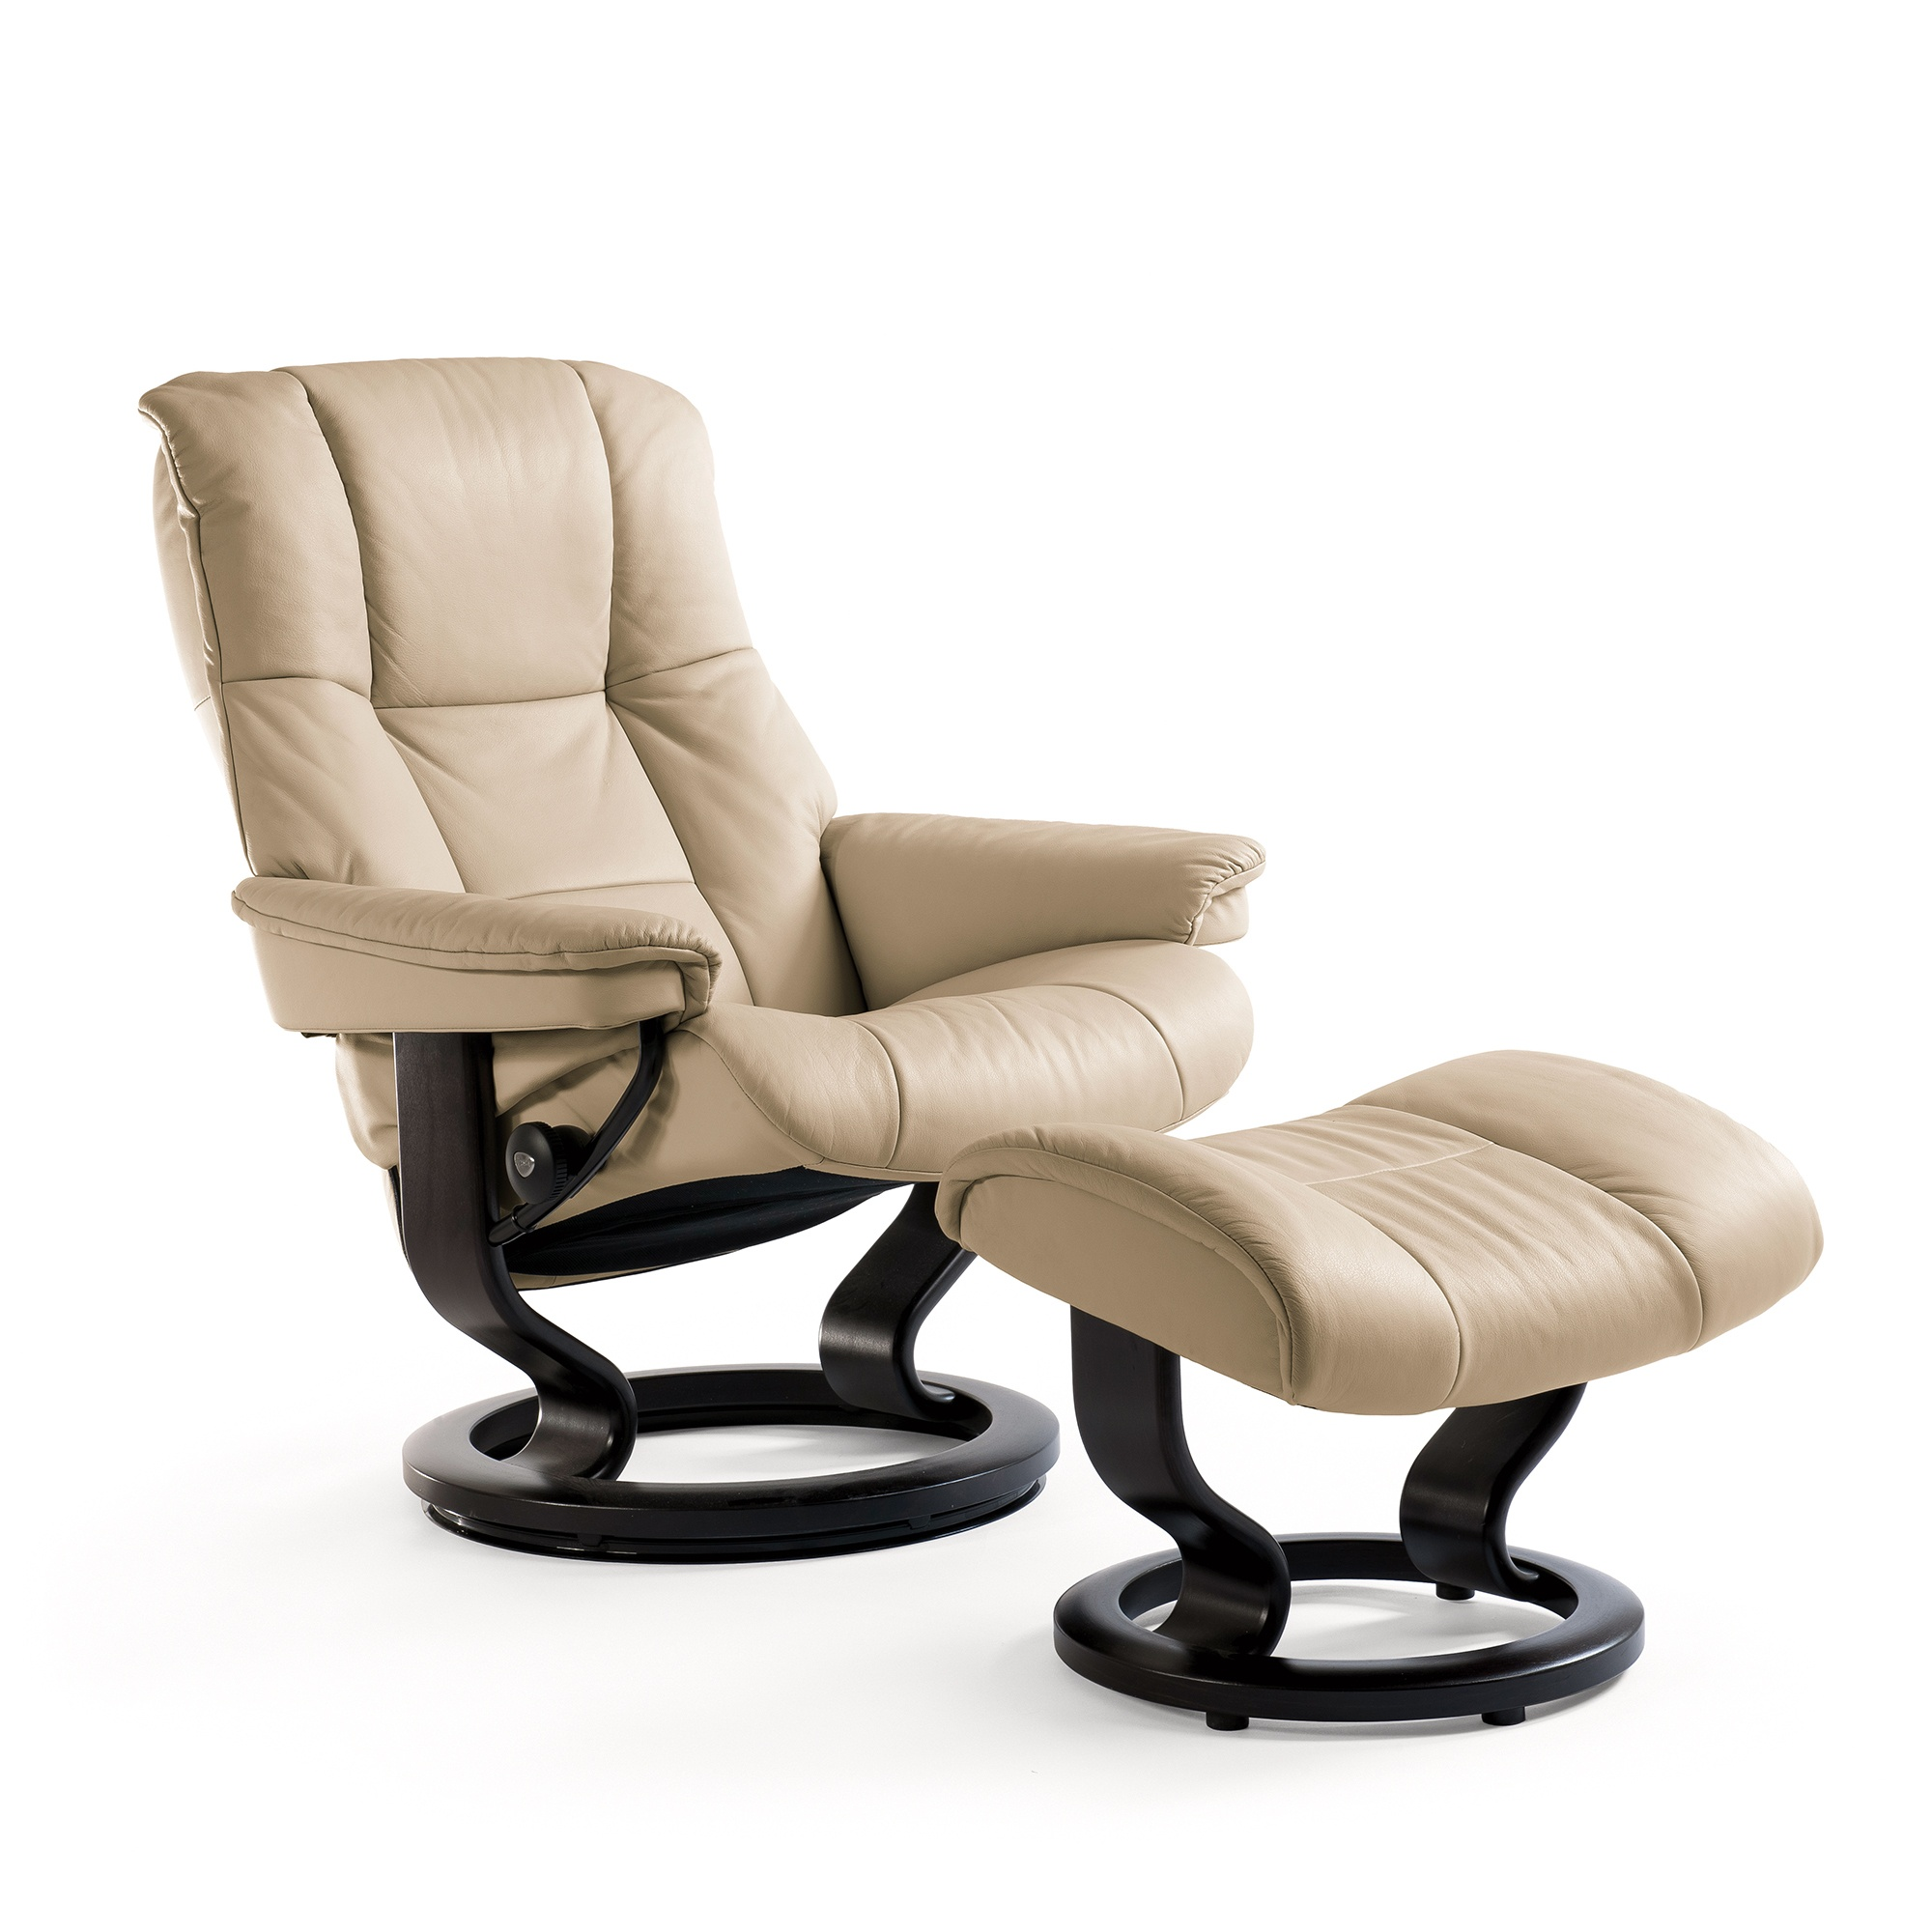 Stresless Stressless Mayfair Chair & Stool - Cookes Furniture